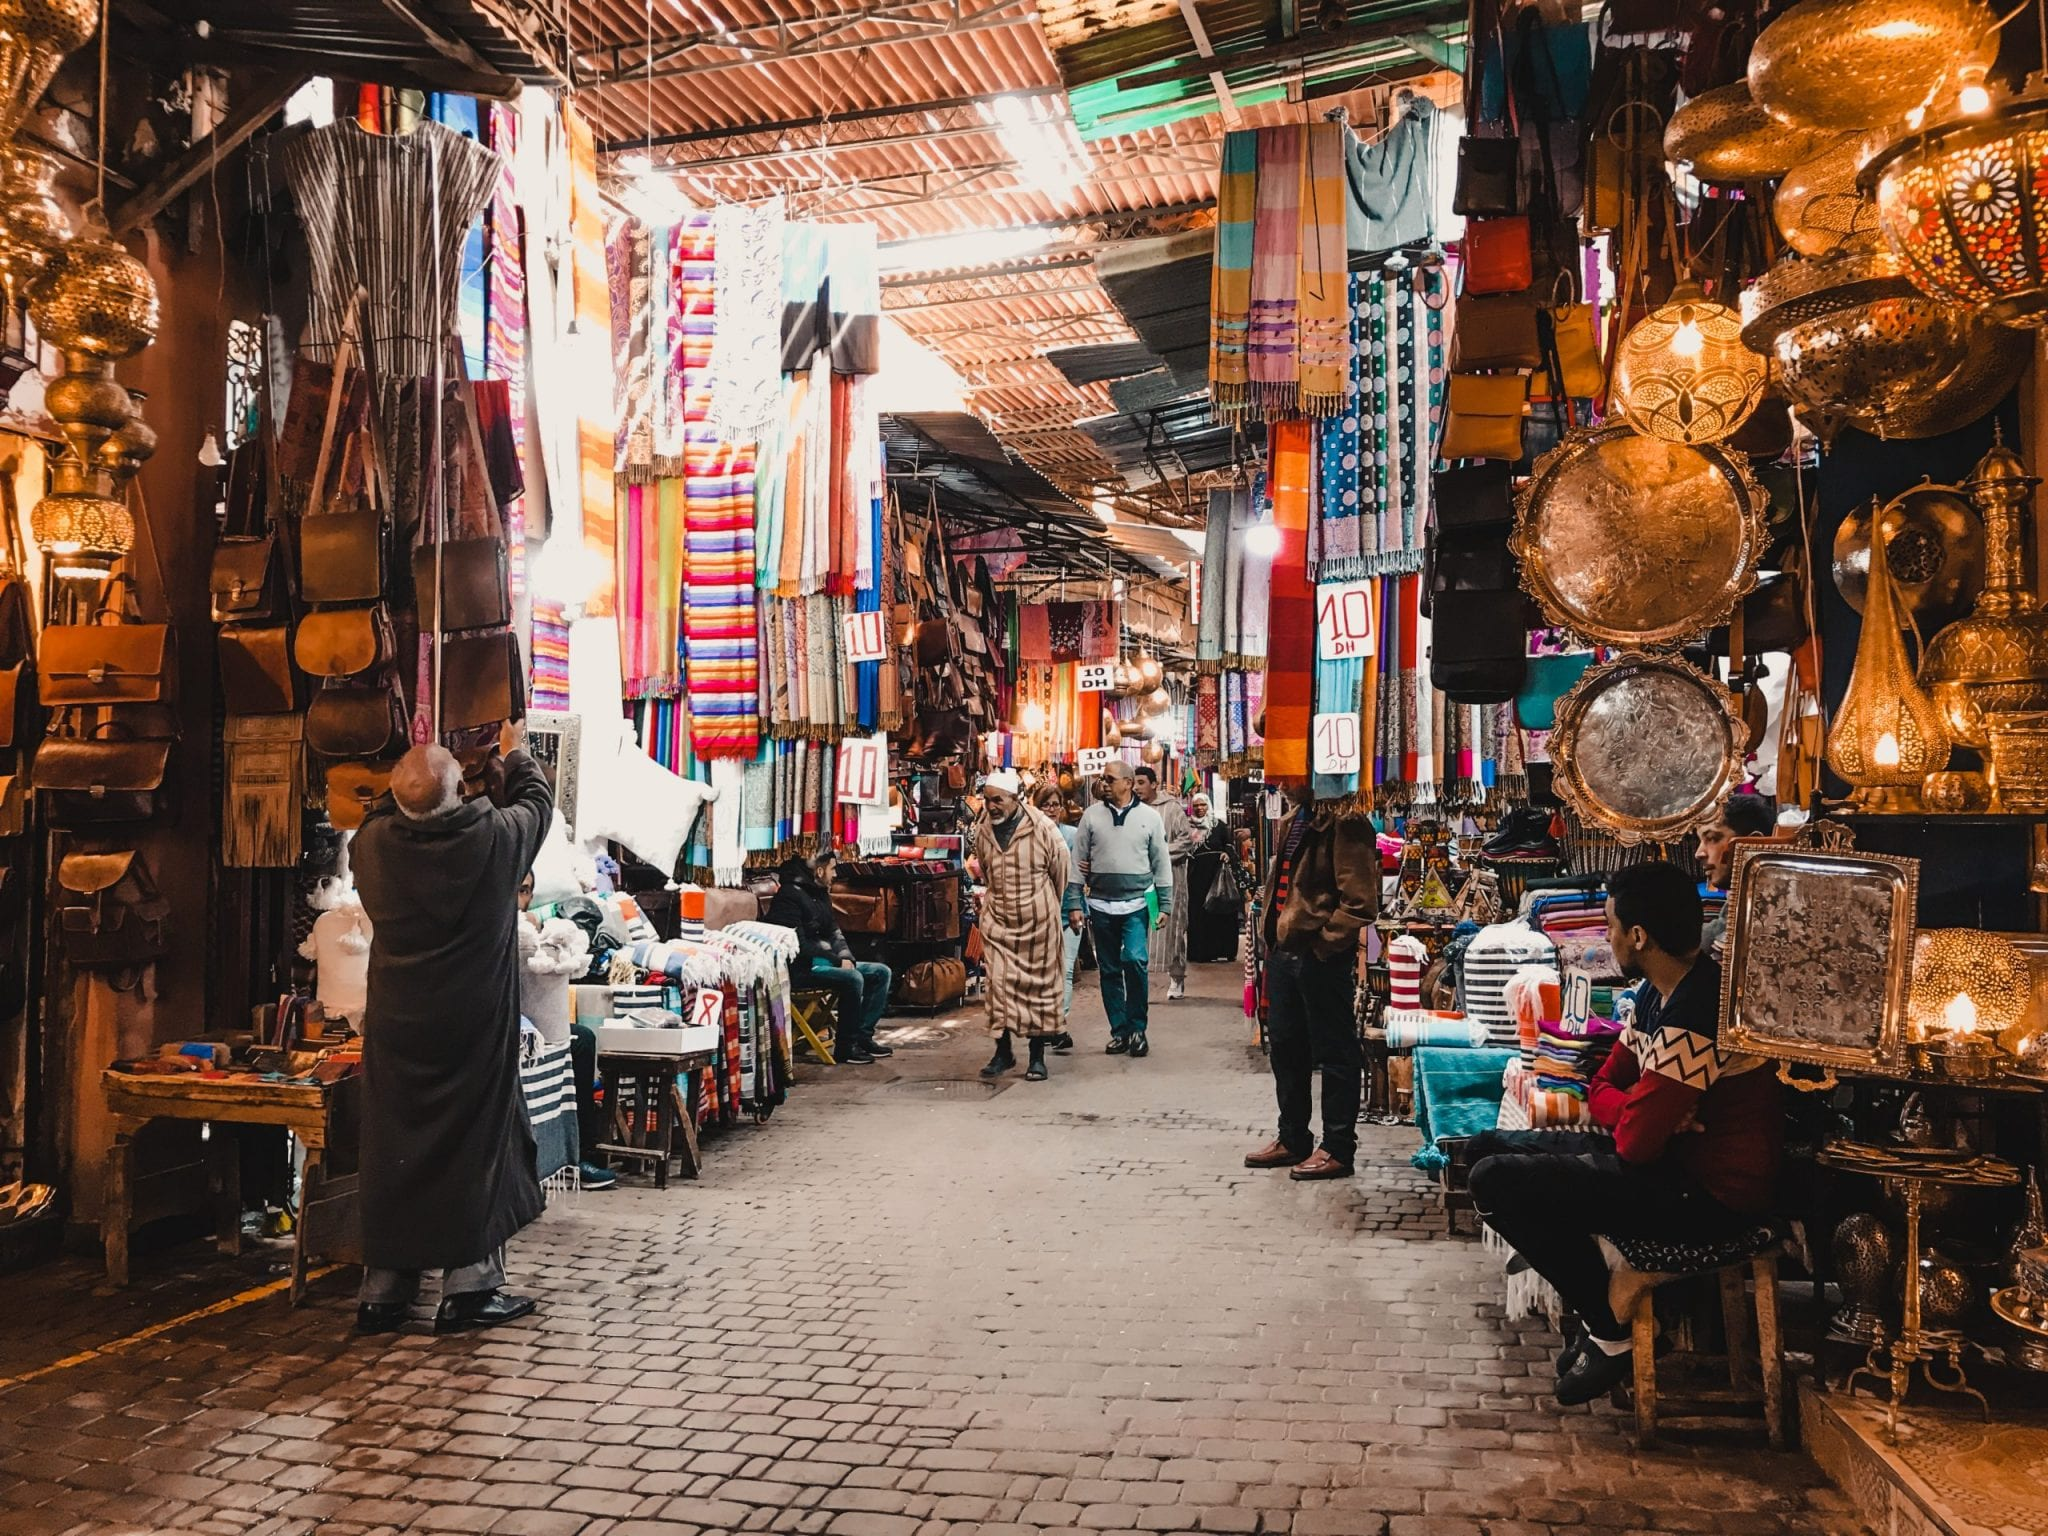 Colourful covered markets in Marrakech Morocco